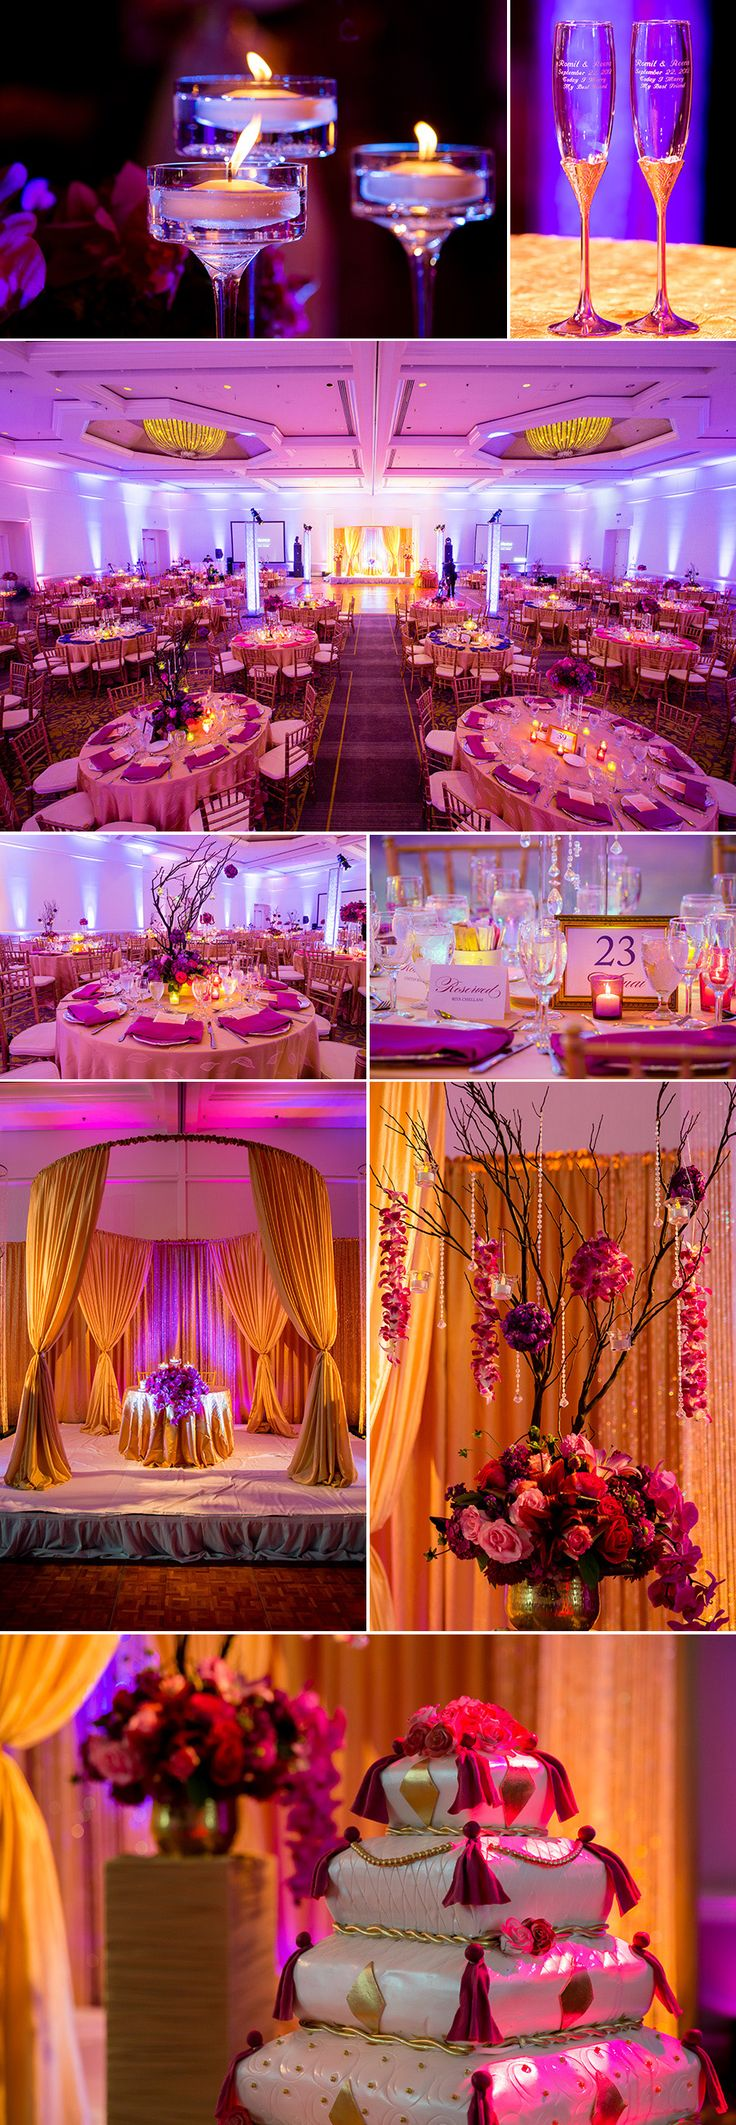 Indian table decorations - Reena Romit San Jose Fairmont Indian Wedding Reception Via Sunjayjk